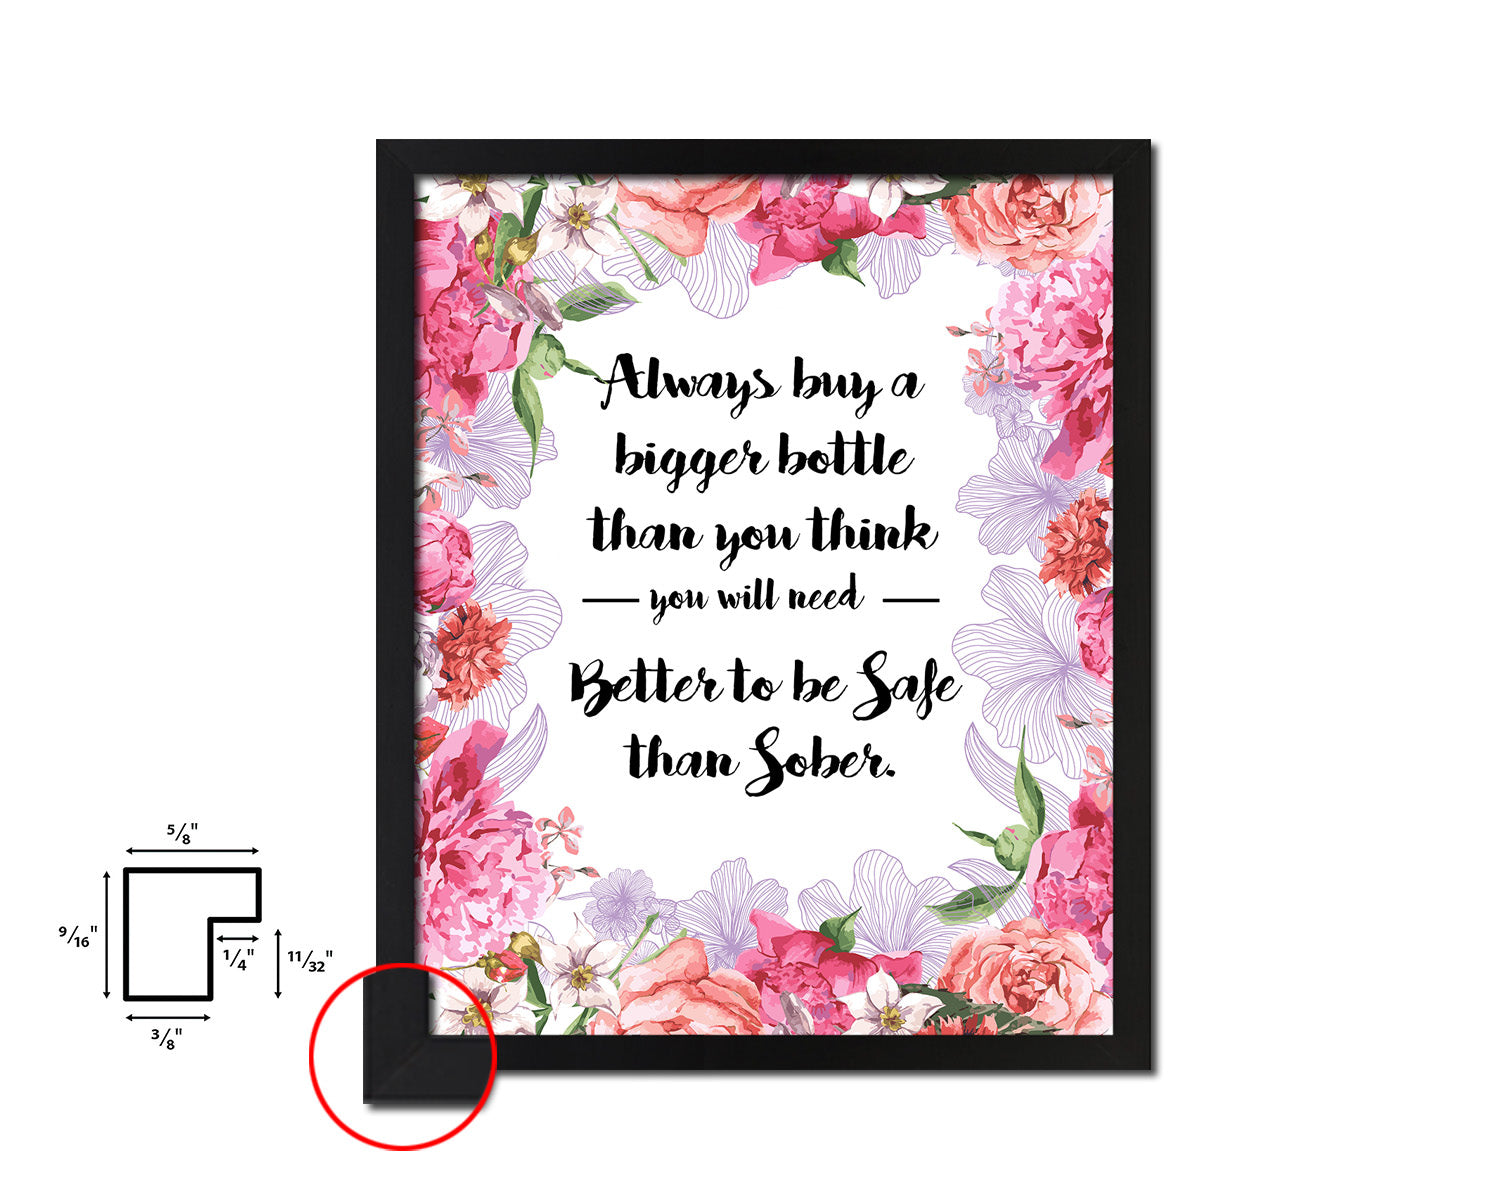 Always buy a bigger bottle than you think Framed Artwork Print Wall Decor Art Gifts